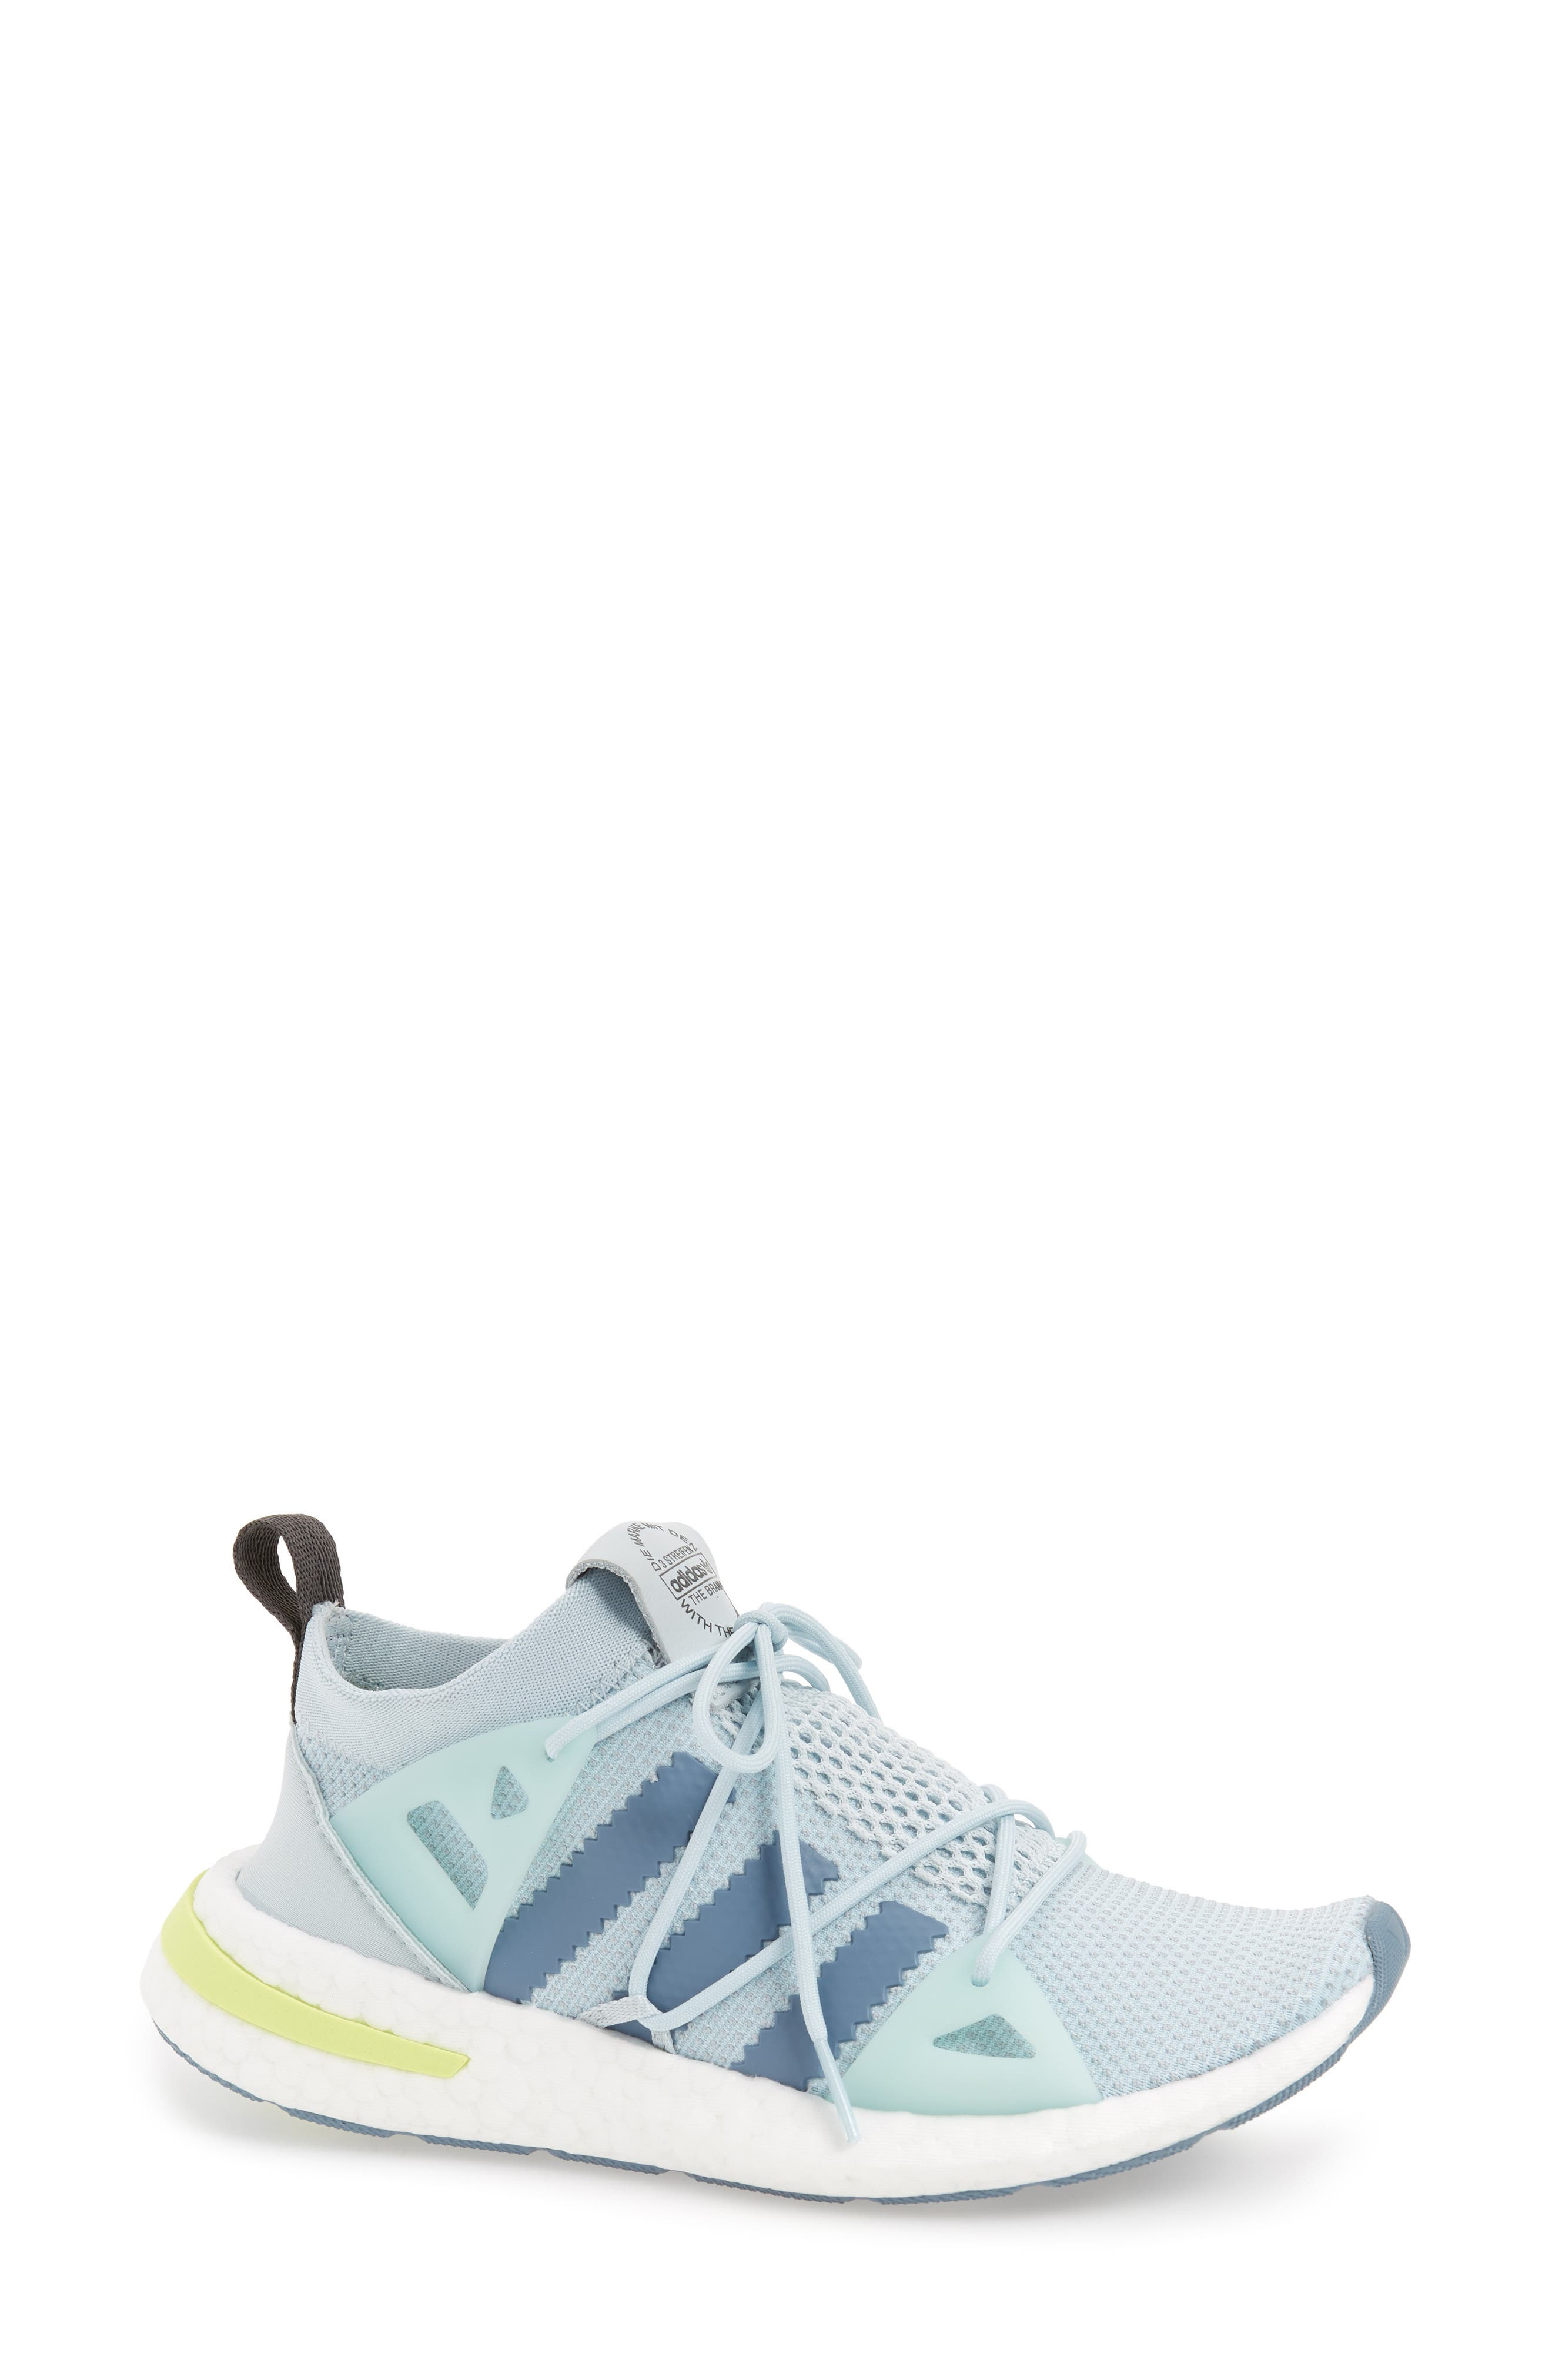 Arkyn Sneaker,                         Main,                         color, Blue Tint/ Raw Grey/ Grey Five